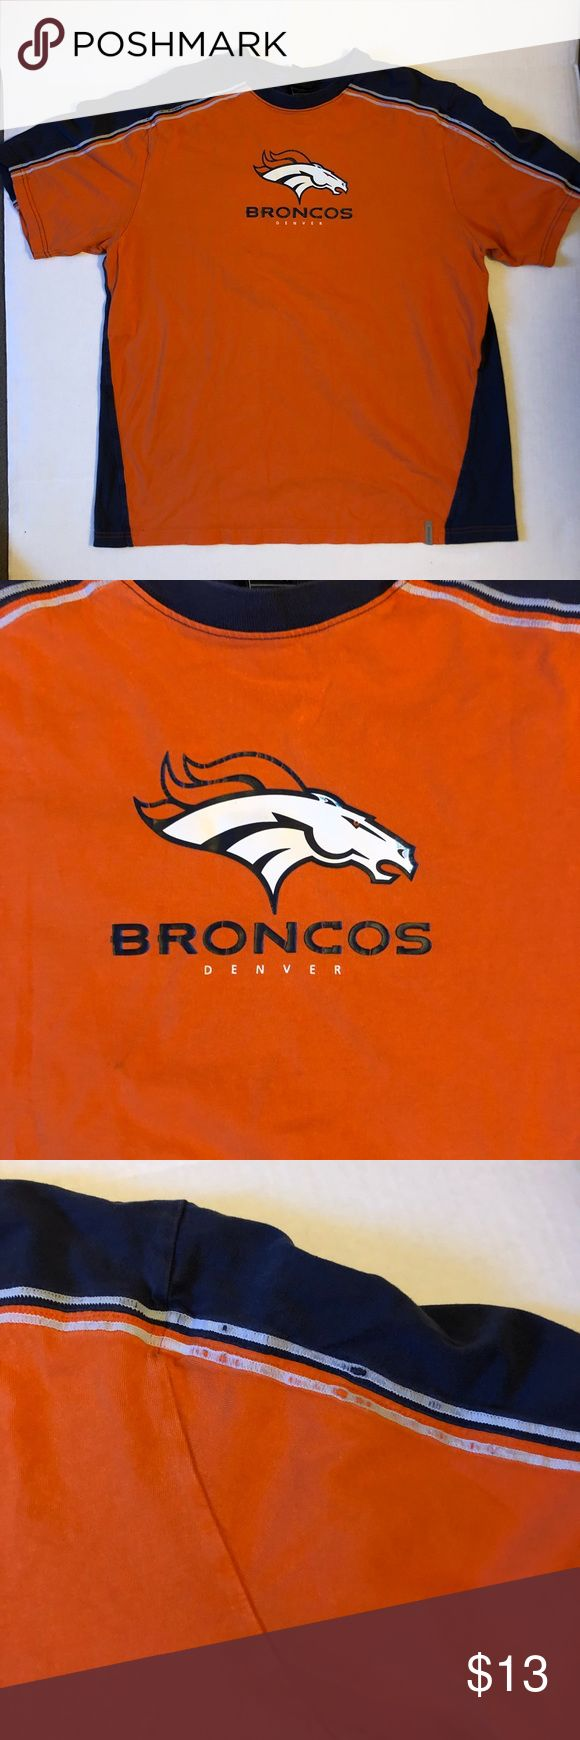 Denver Broncos NFL T-Shirt Mens XL Denver Broncos NFL T-Shirt Xtra-Large  For sale is a good condition Denver Broncos t-Shirt size men's XL. In good condition the shirt has no smells, odors and rips or tears. Does have a little wear on the shoulders.  Shirt ships out fast. Reebok Shirts Tees - Short Sleeve